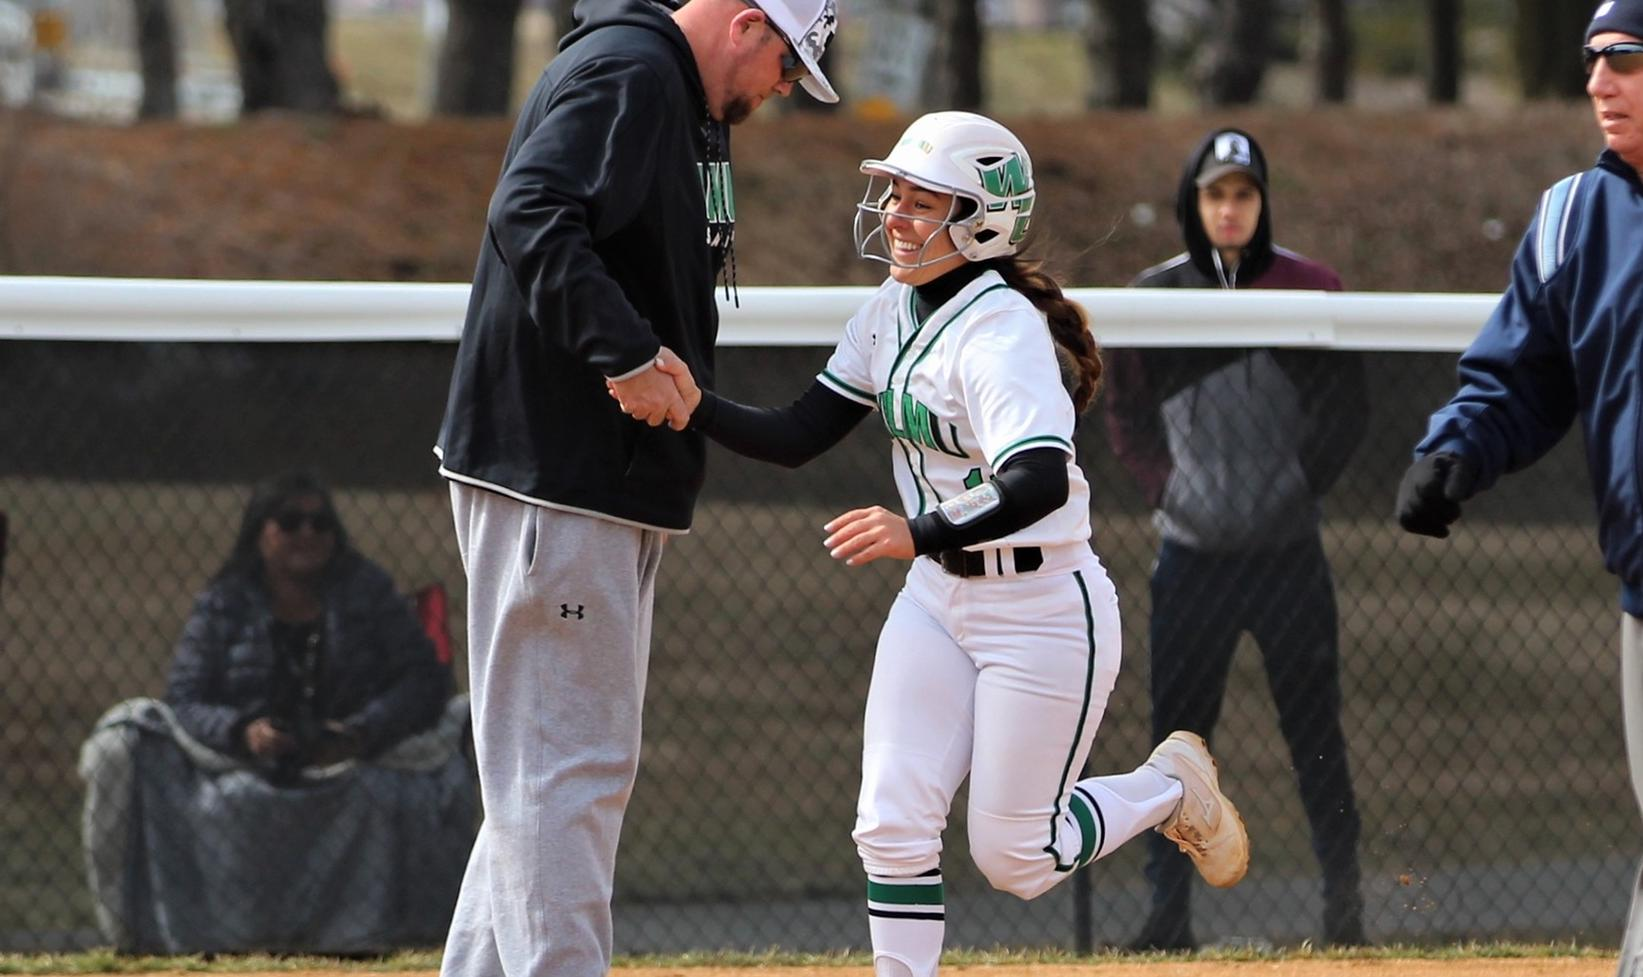 Copyright 2019; Wilmington University. All rights reserved. Photo of Annie Davila greeting assistant coach Rich Groff after one of her two home runs on Wednesday. Photos by Keara McCarthy. March 13, 2019 vs. Shippensburg.